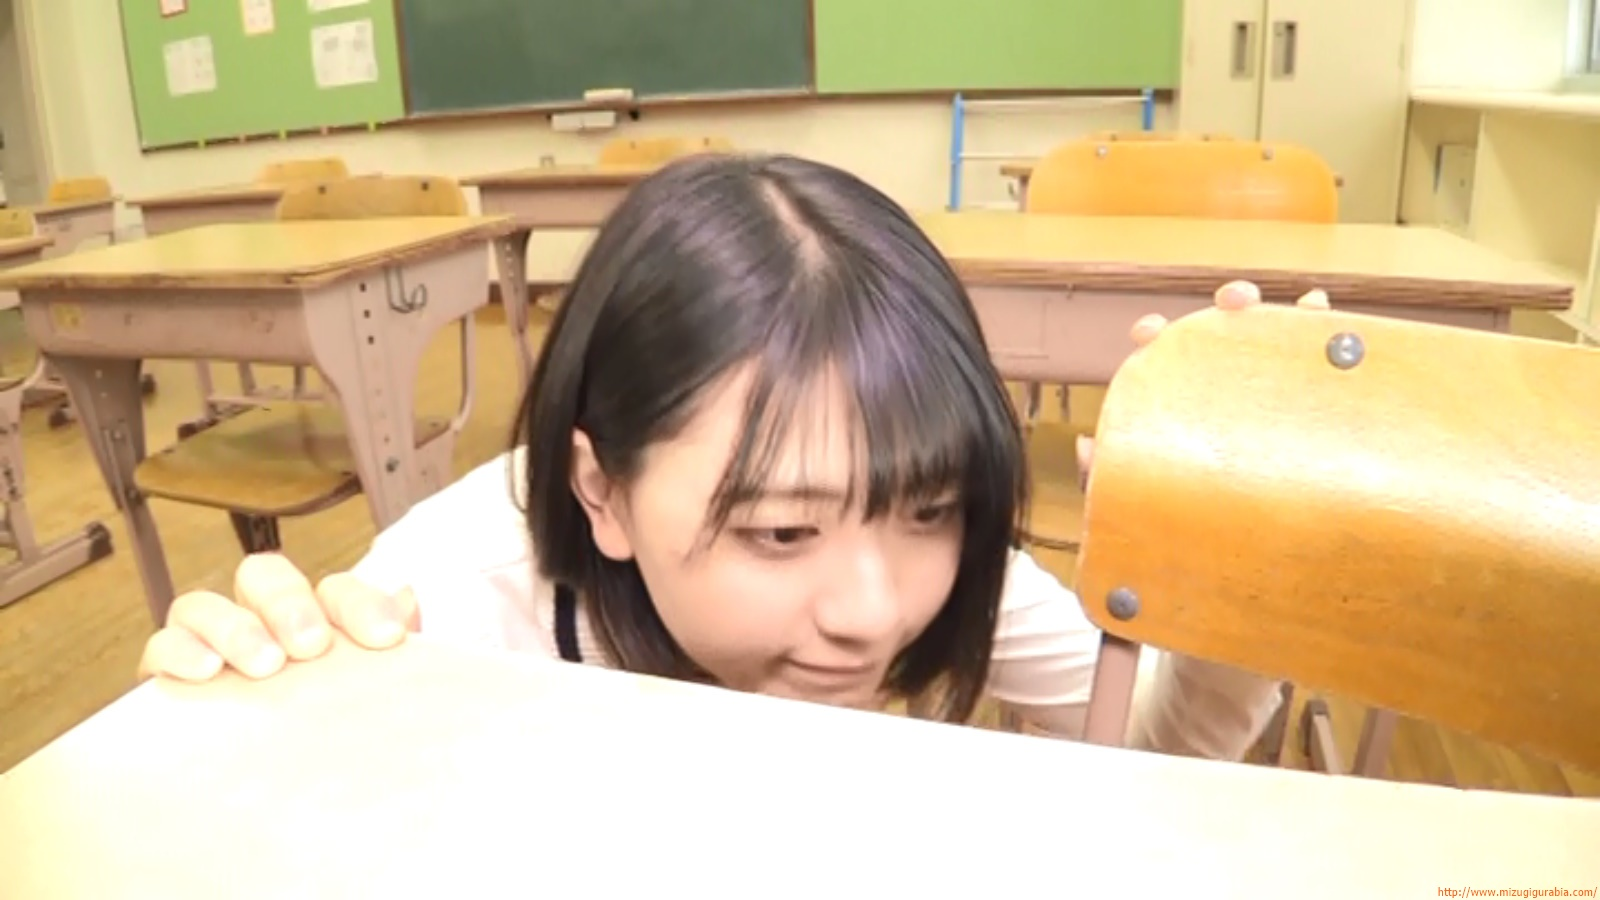 Two-person classroom047